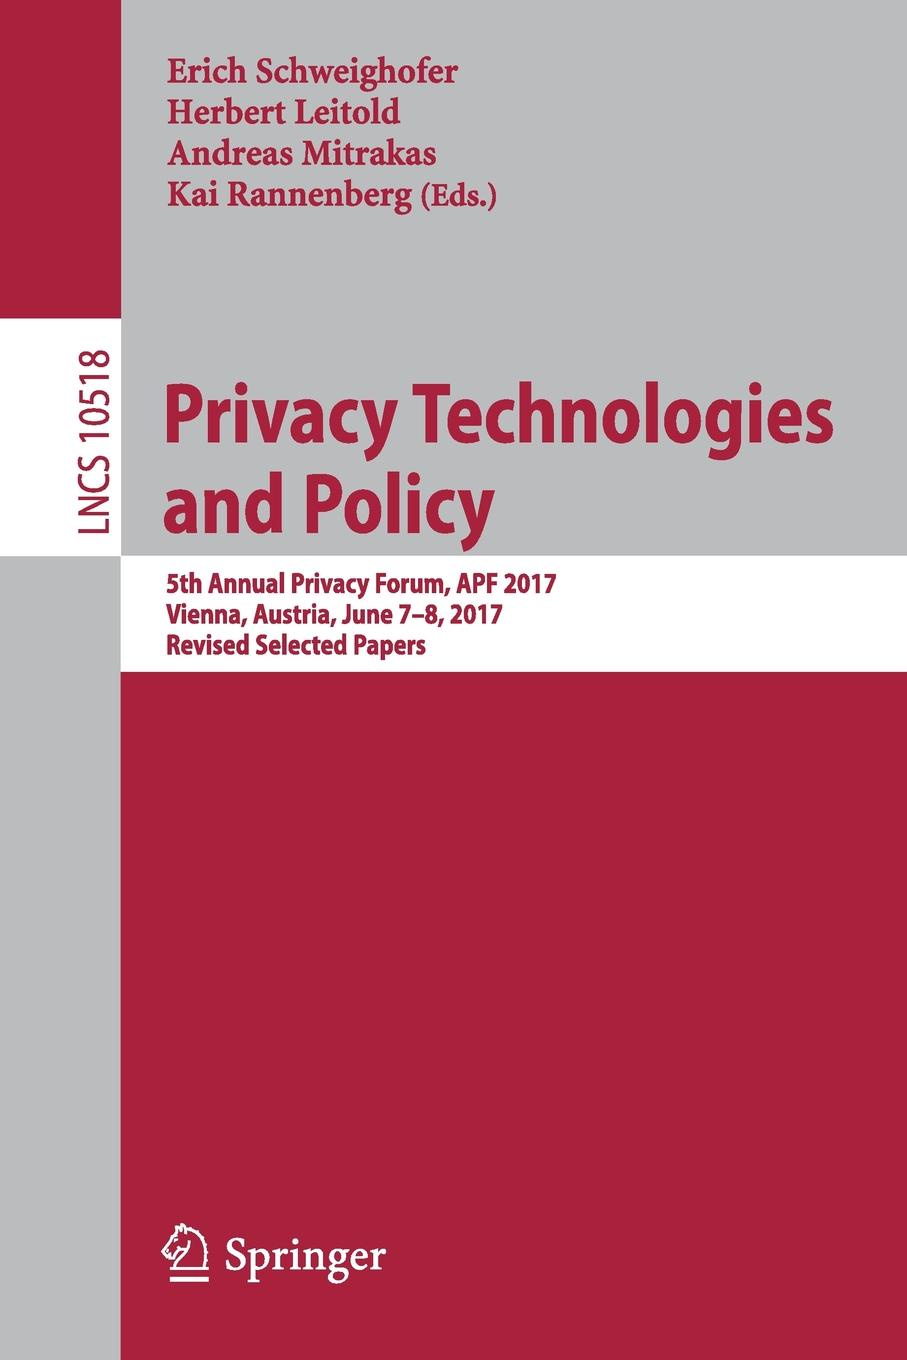 Privacy Technologies and Policy. 5th Annual Privacy Forum, APF 2017, Vienna, Austria, June 7-8, 2017, Revised Selected Papers cyber security and privacy third cyber security and privacy eu forum csp forum 2014 athens greece may 21 22 2014 revised selected papers